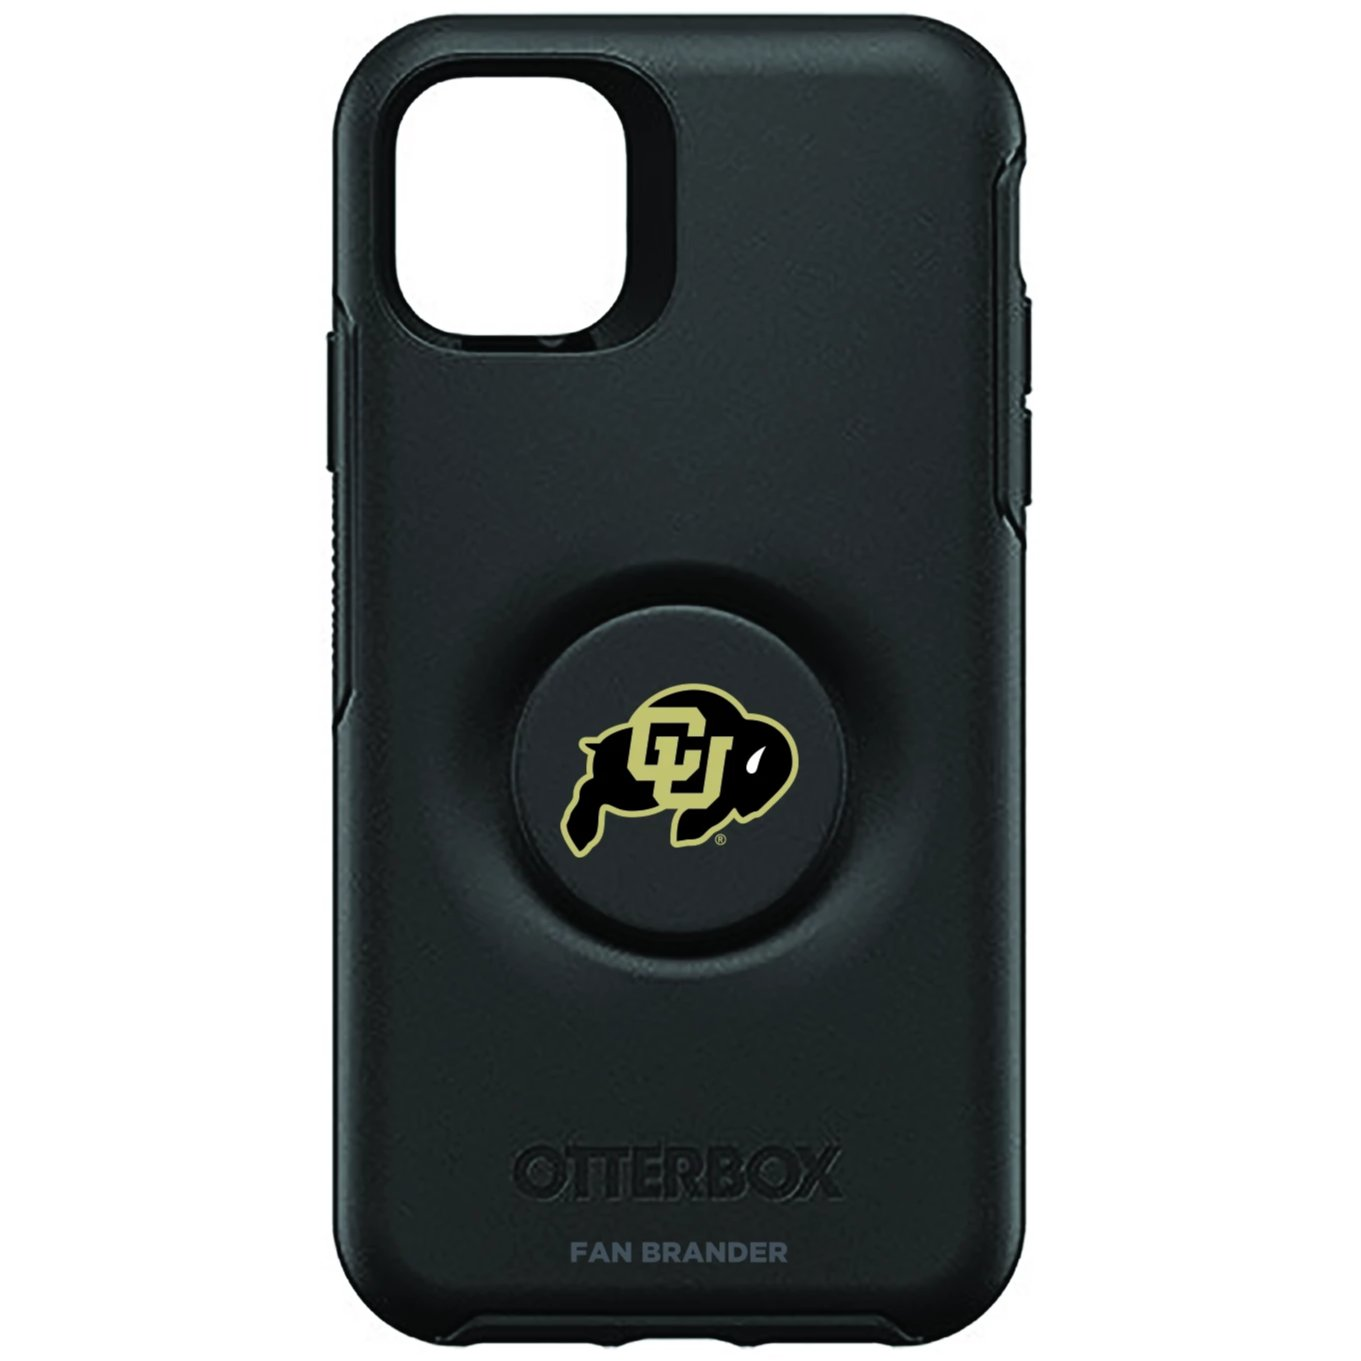 Colorado Buffaloes Otter + Pop Symmetry Case (for iPhone 11, Pro, Pro Max)